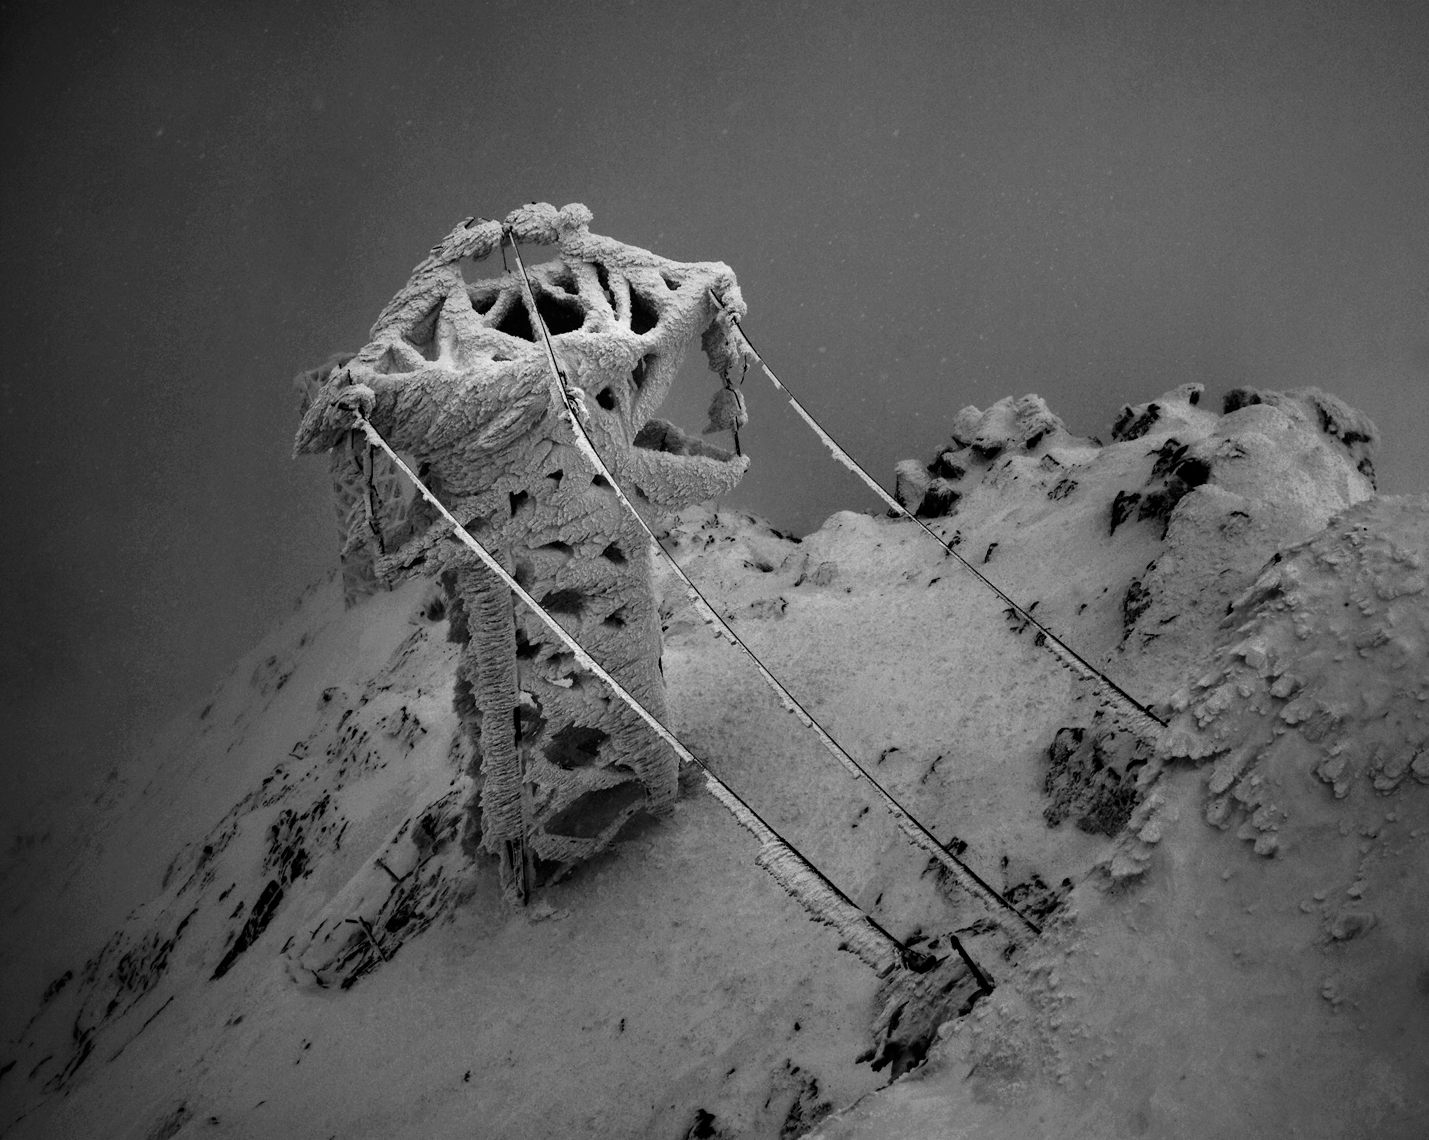 Jon Wyatt Photography - Ice-encrusted pylon near the peak of Lomnicky Stit, High Tatras mountains, Slovakia